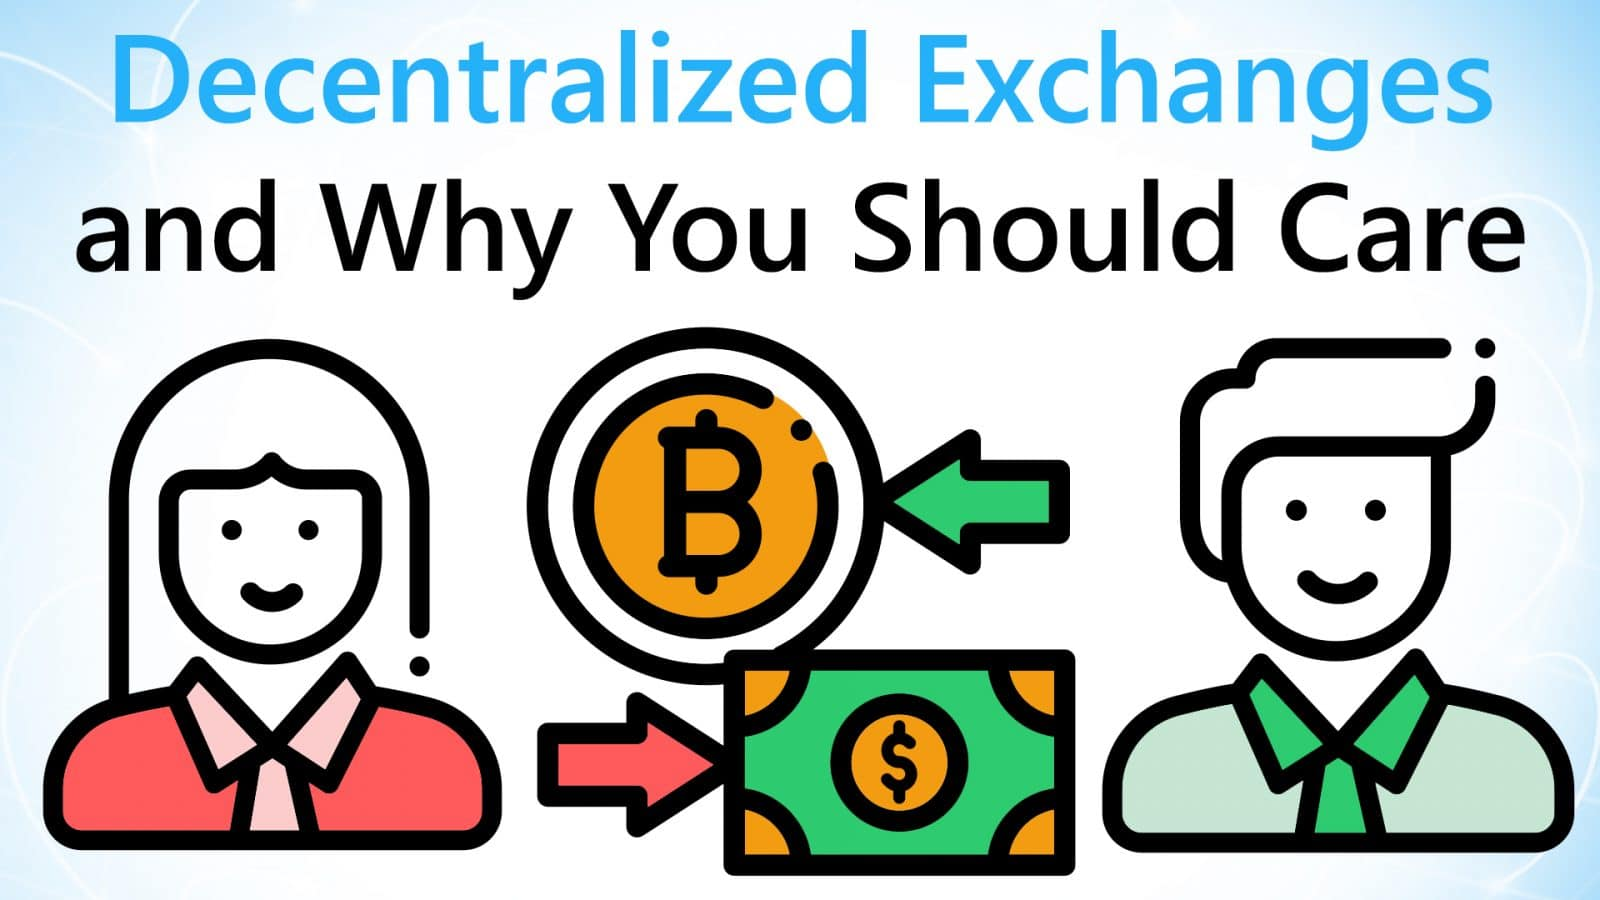 What is a Decentralized Exchange?